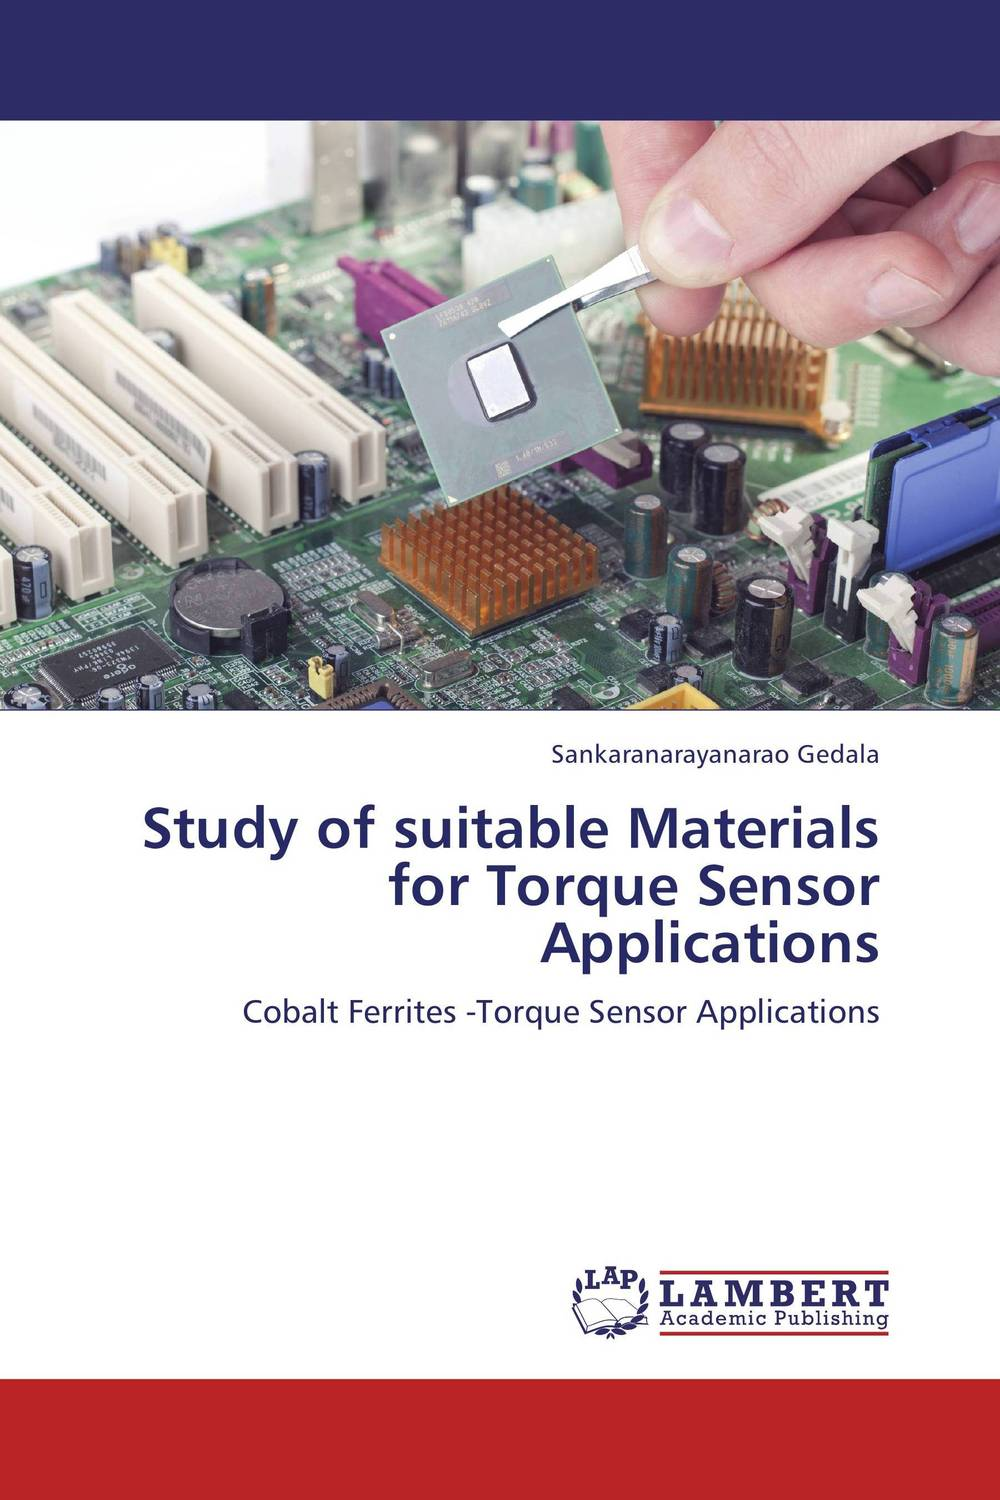 Study of suitable Materials for Torque Sensor Applications david atwood a the rare earth elements fundamentals and applications